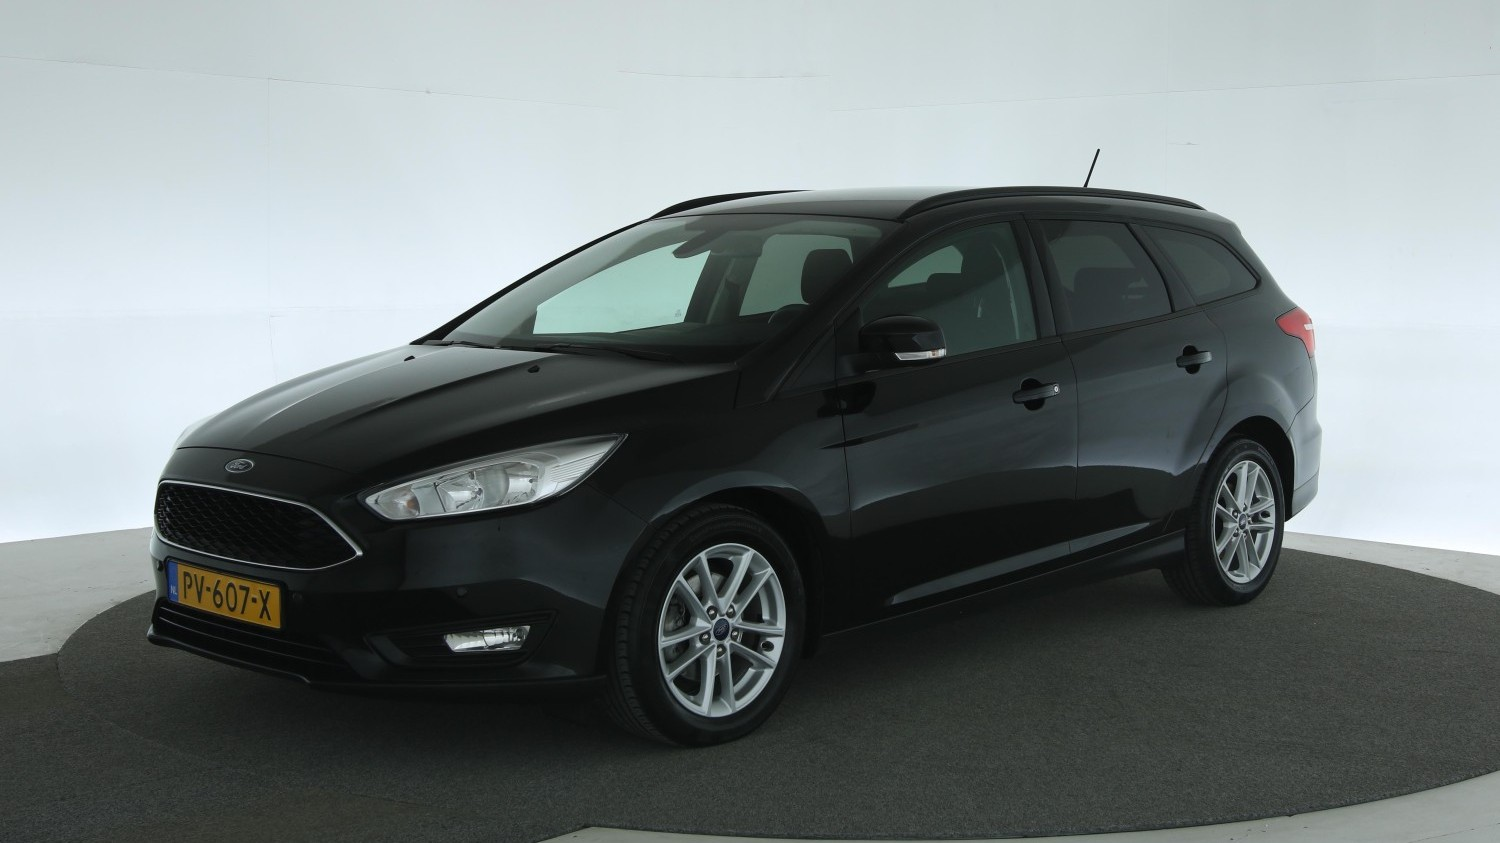 Ford Focus Station 2017 PV-607-X 1